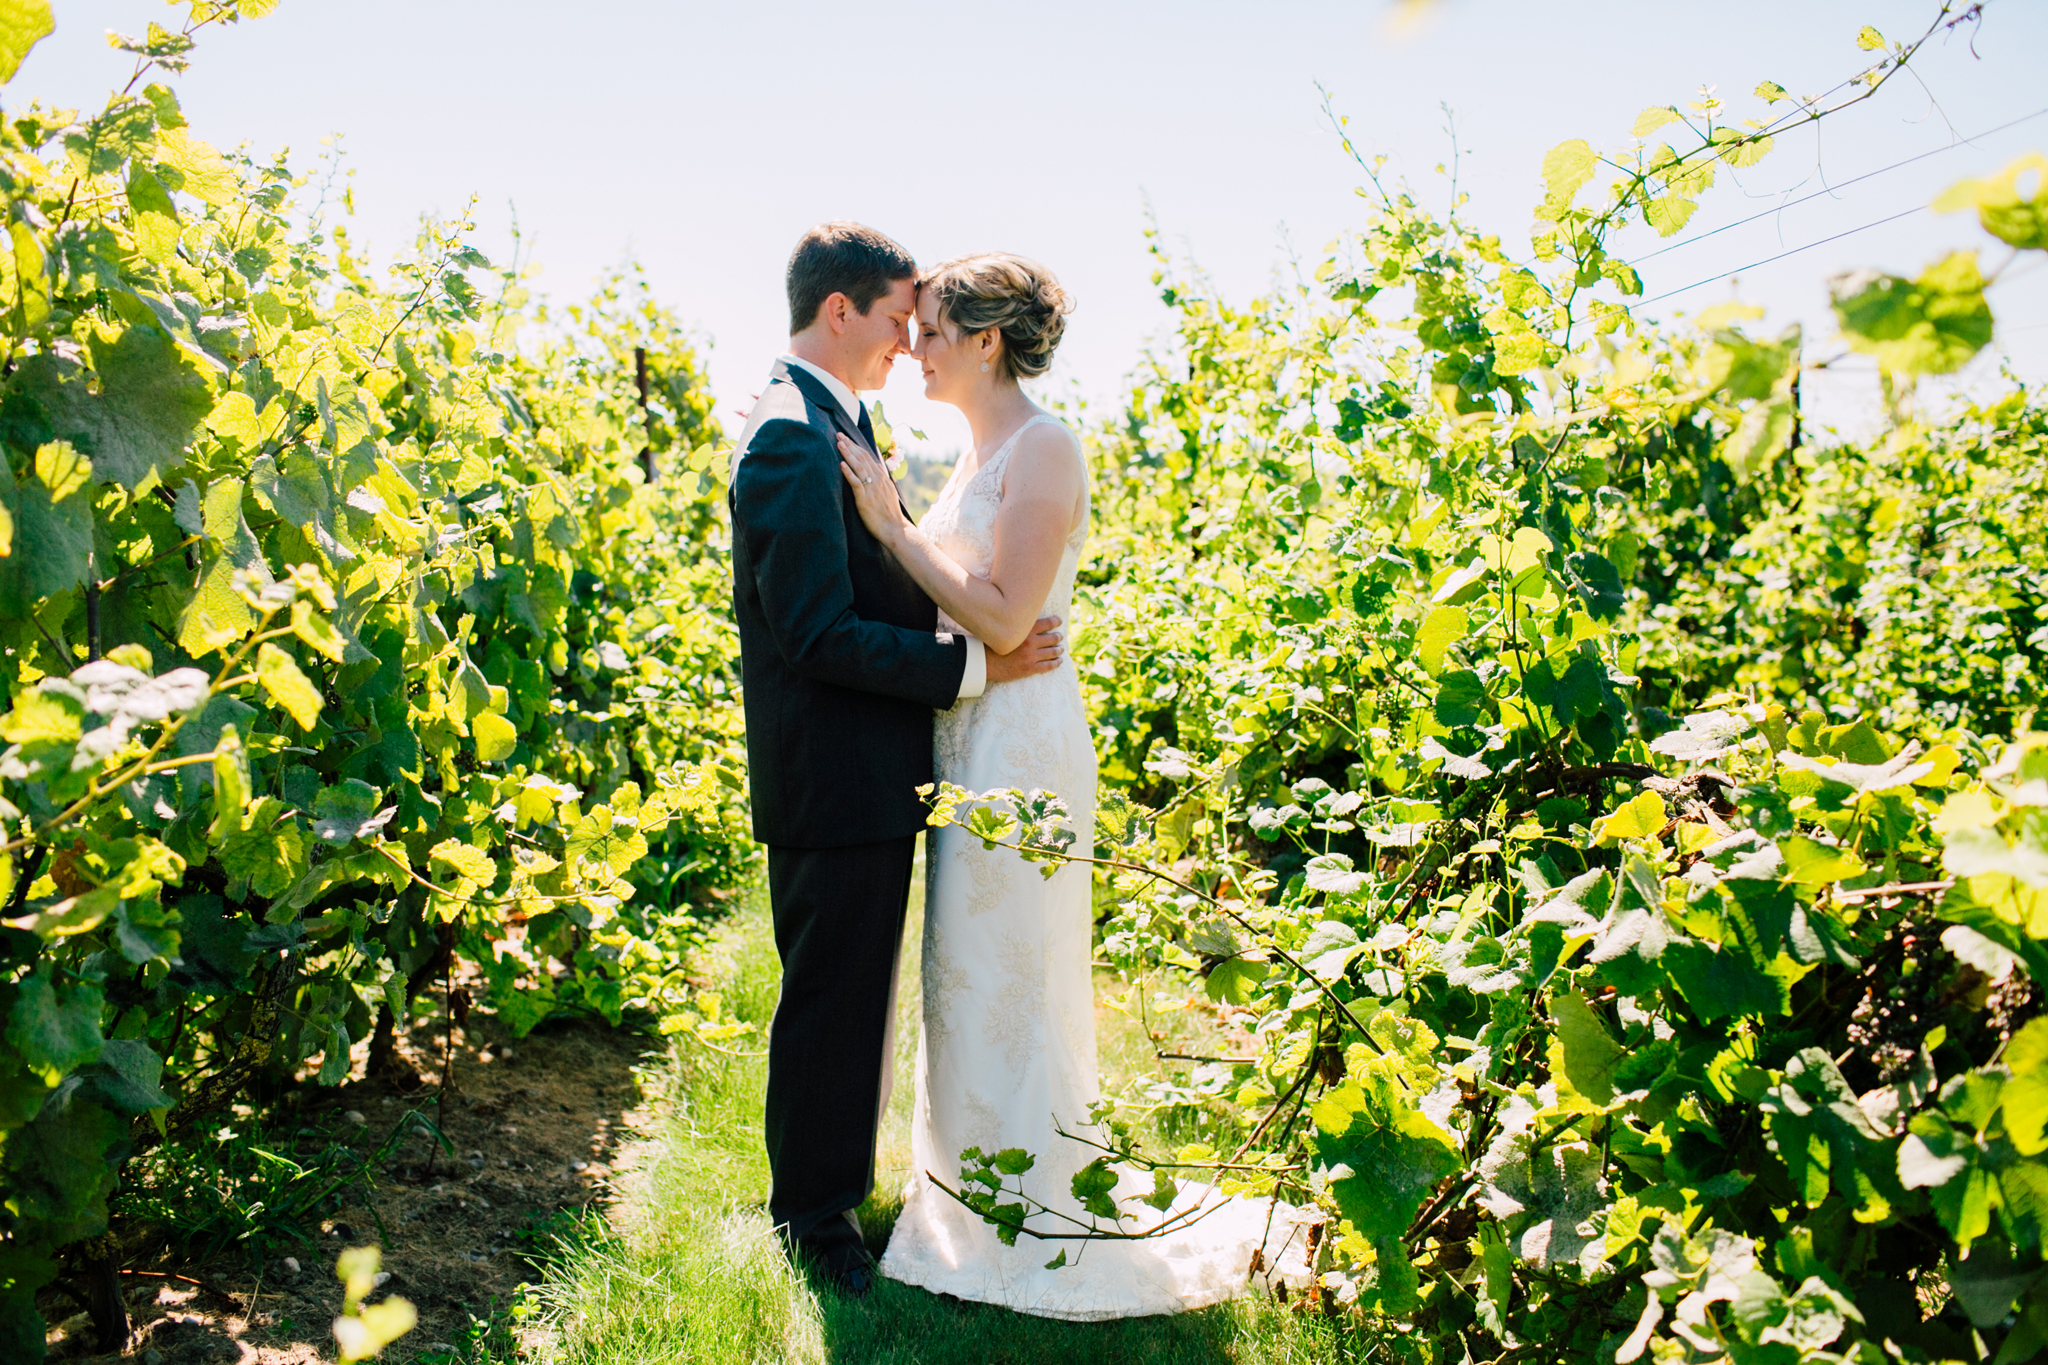 022-bellingham-wedding-photographer-samson-winery-katheryn-moran.jpg